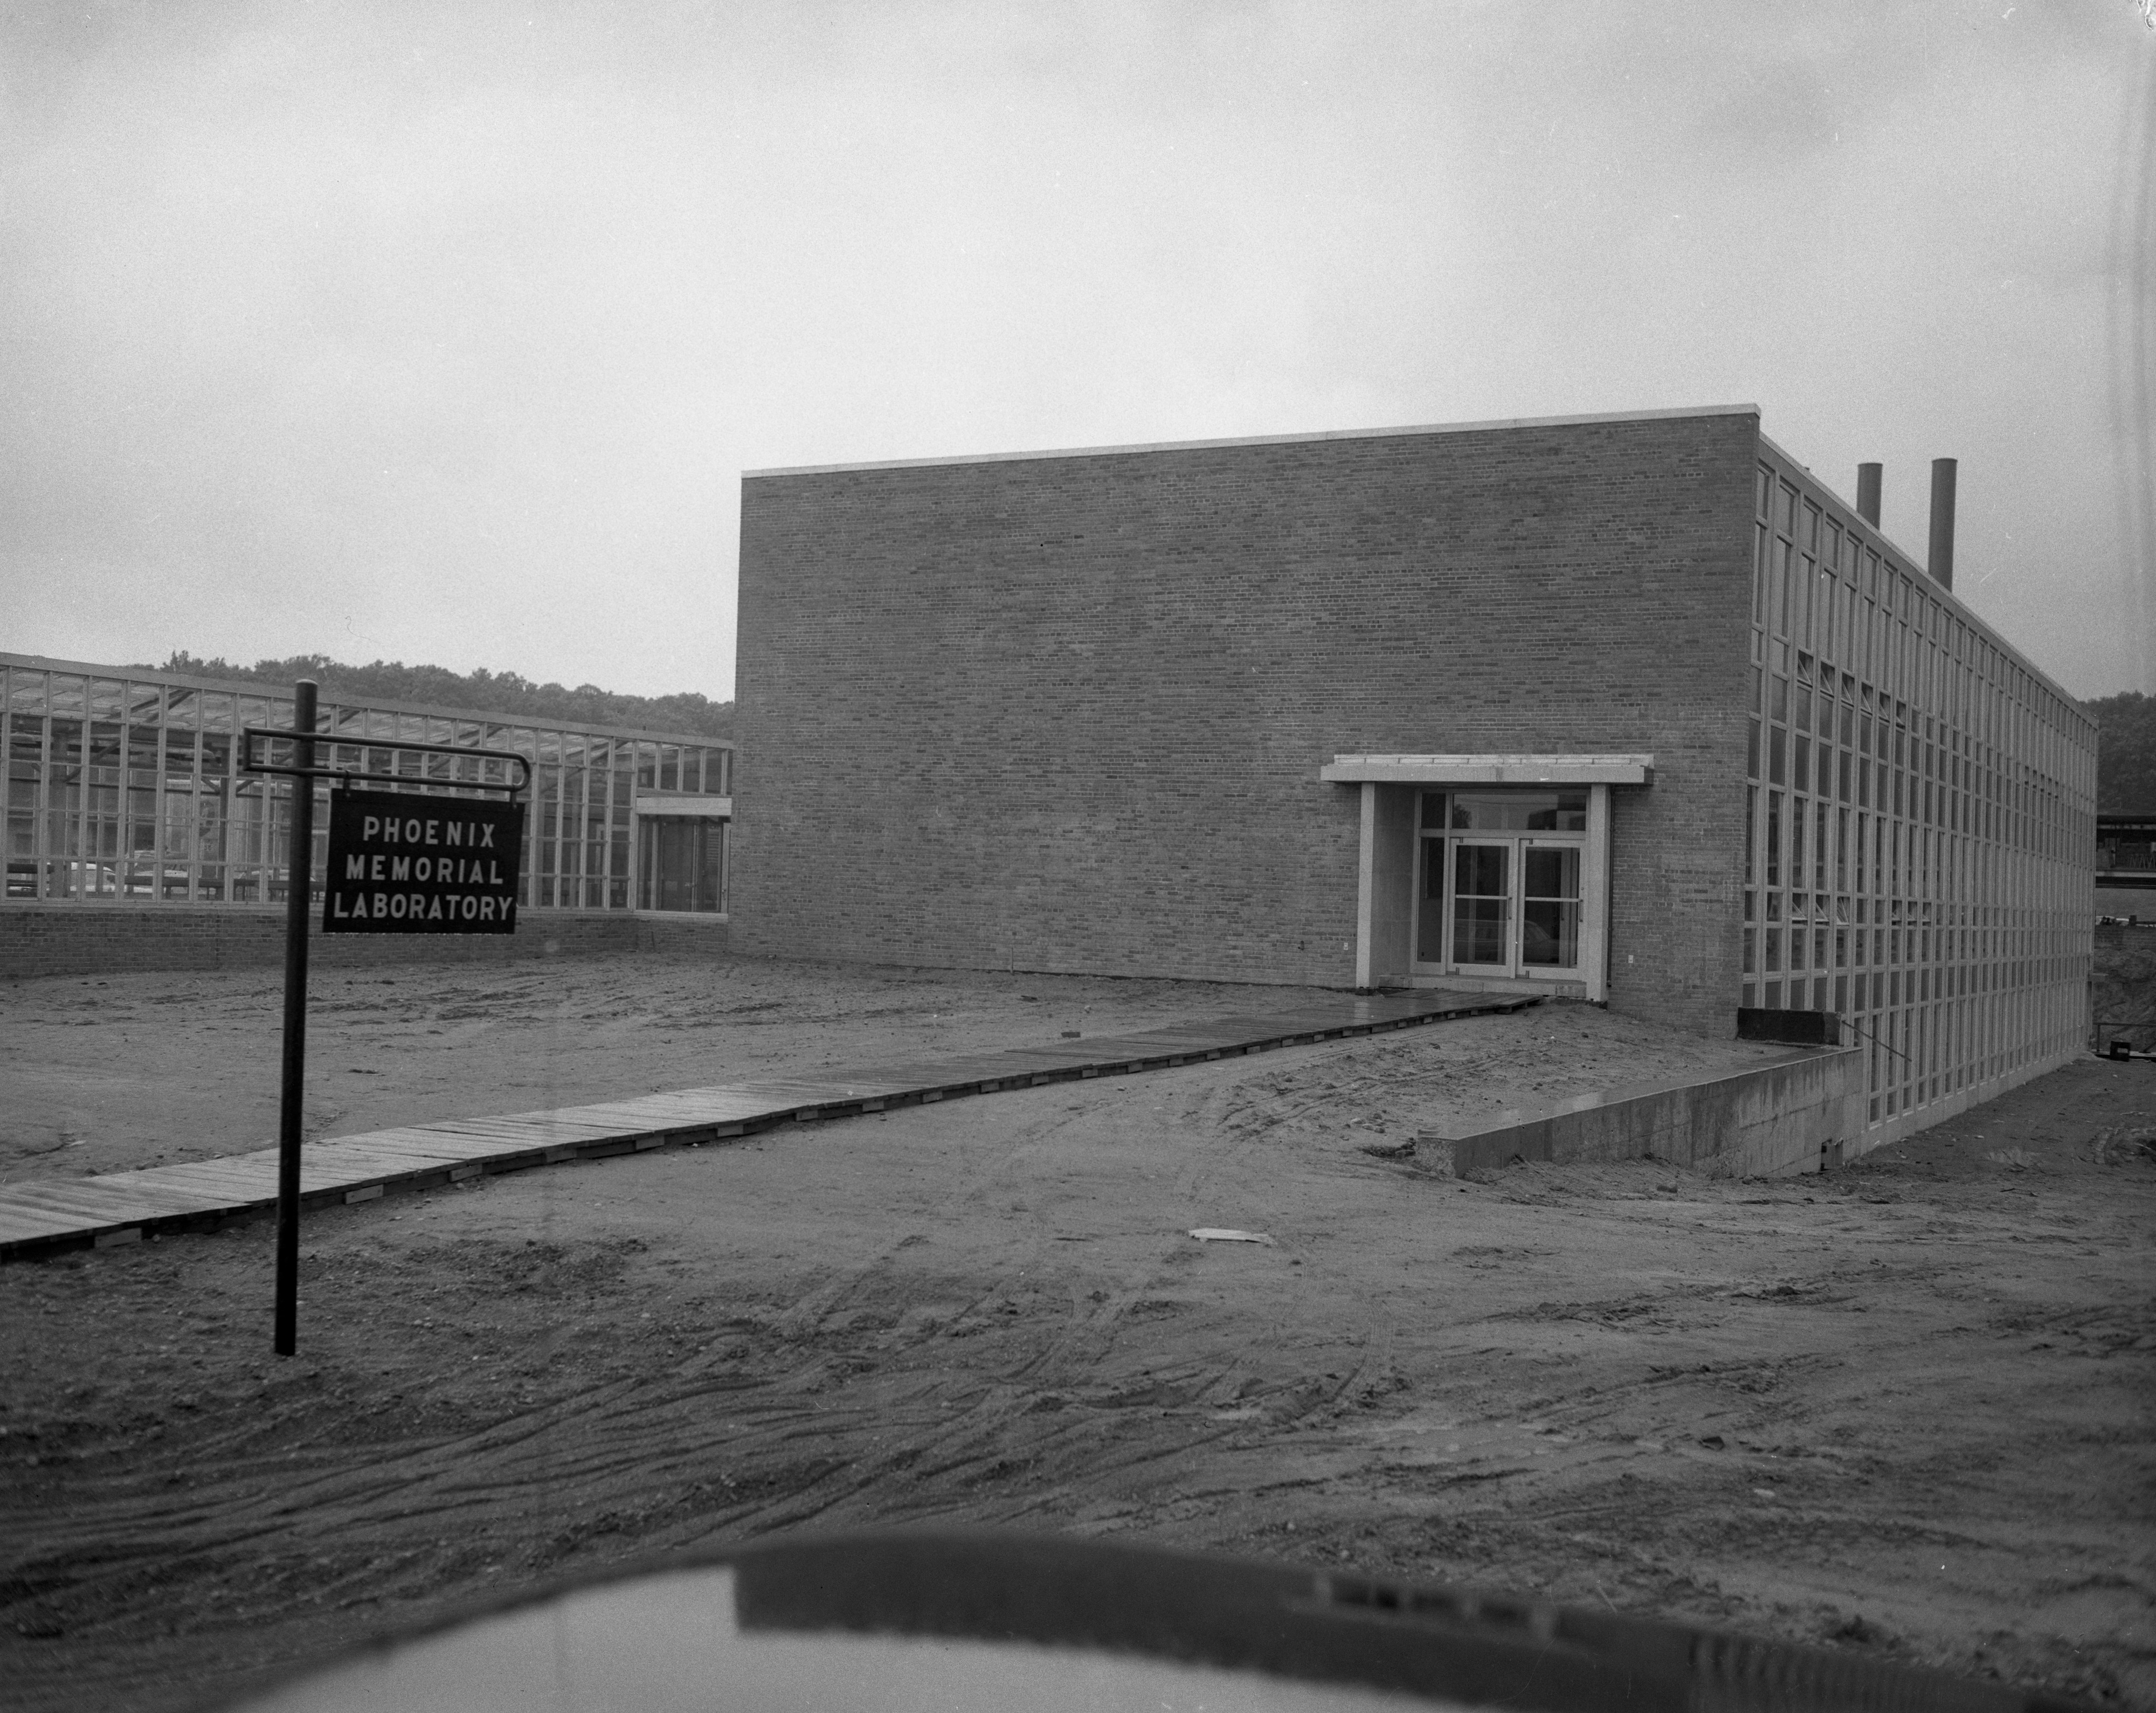 Phoenix Memorial Laboratory, June 1955 image